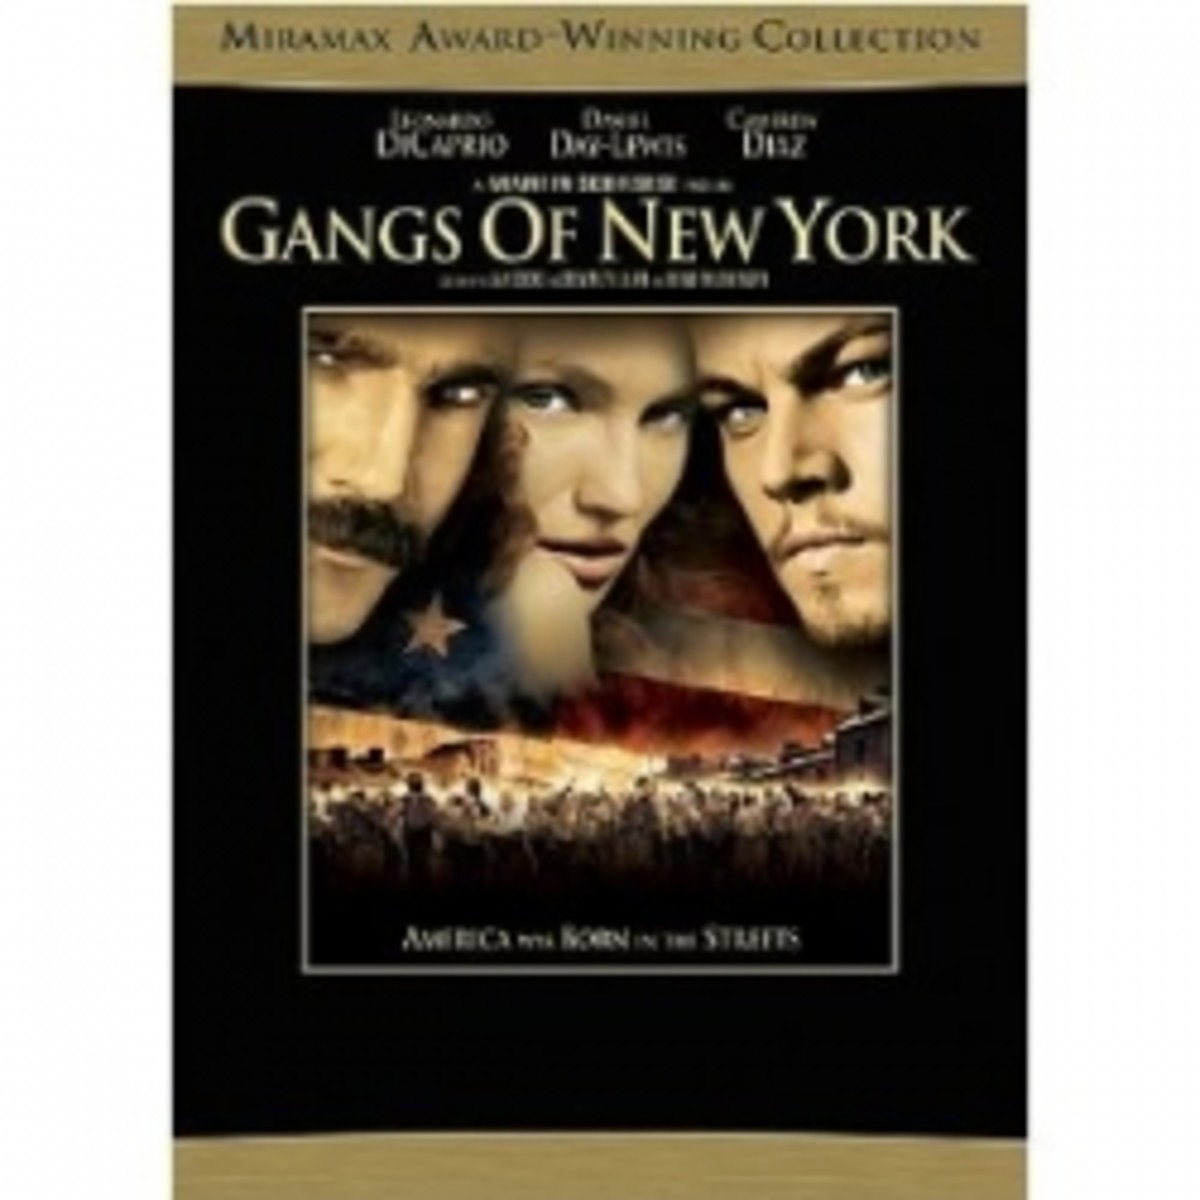 Gangs of New York movie poster dicaprio diaz day-lewis